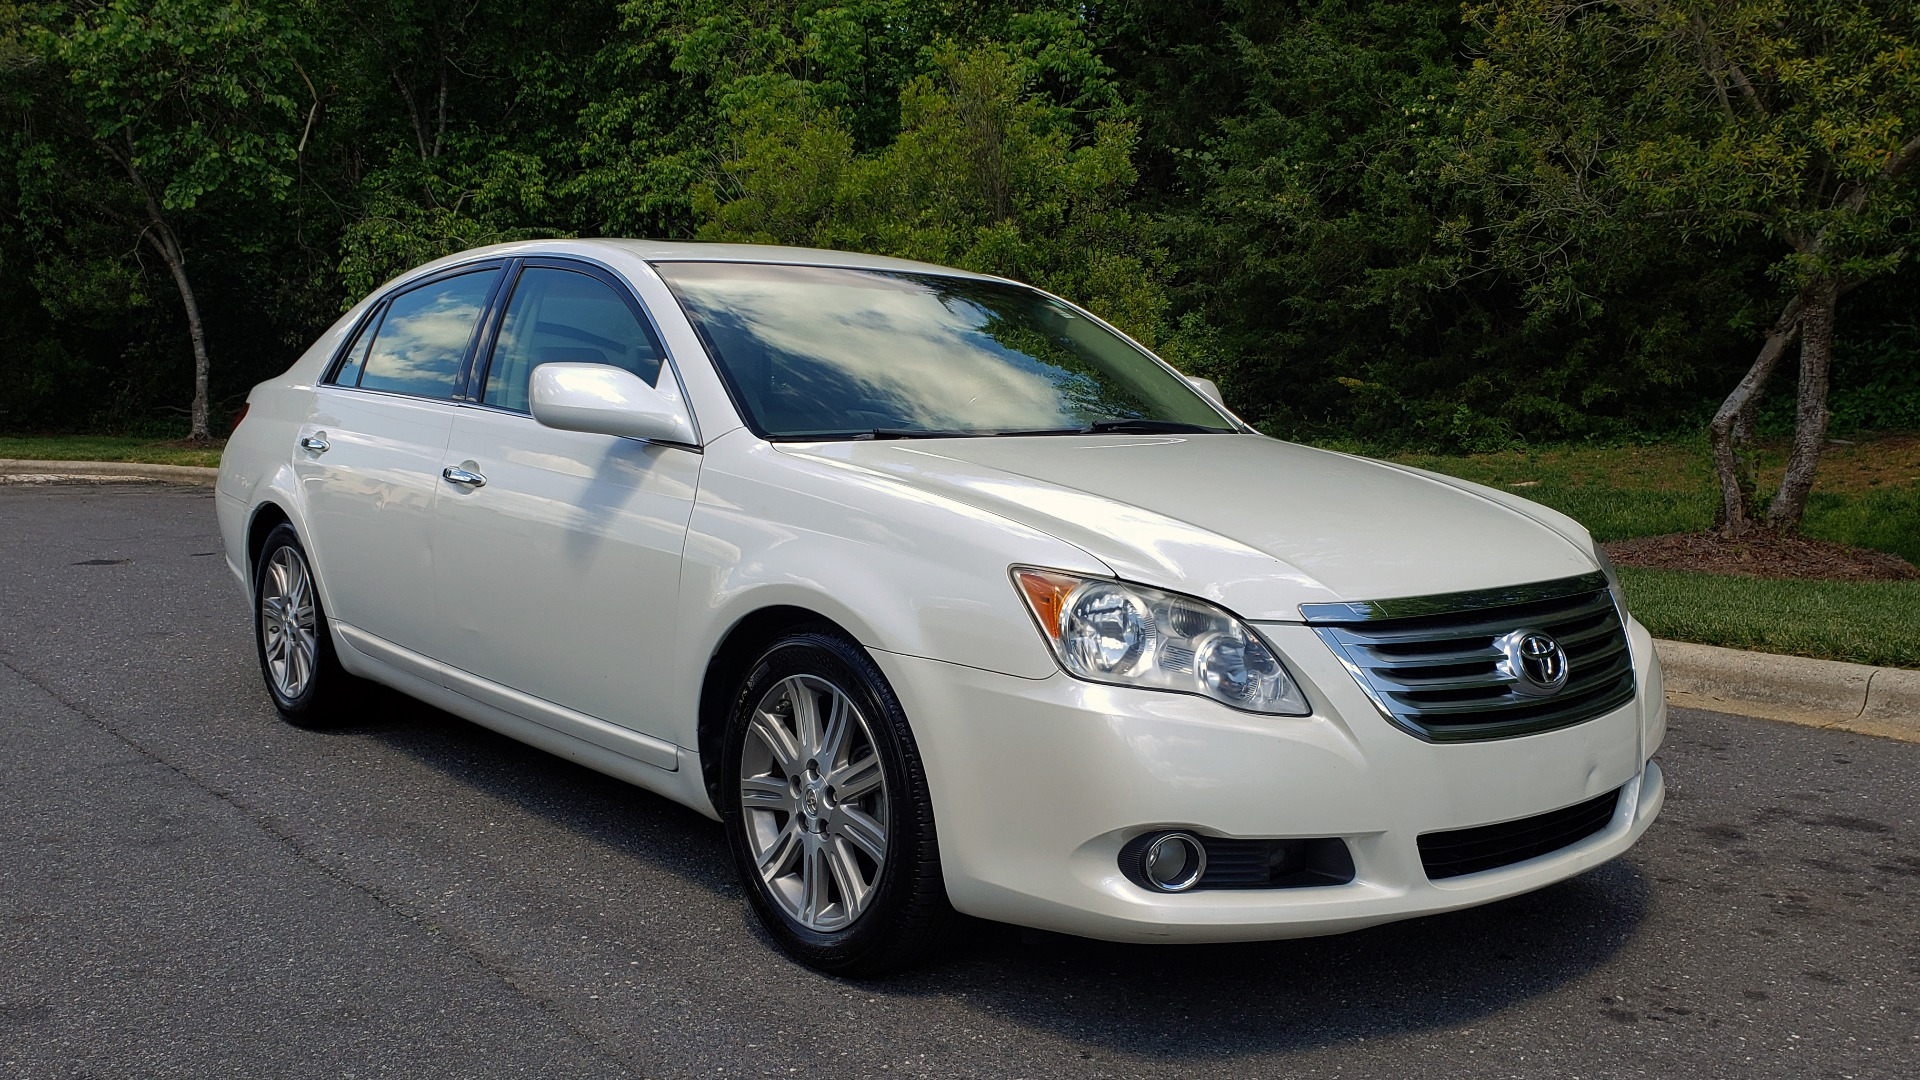 Used 2008 Toyota AVALON LIMITED V6 / FWD / SUNROOF / DYN RADAR CRUISE / BRAKE ASST for sale Sold at Formula Imports in Charlotte NC 28227 4